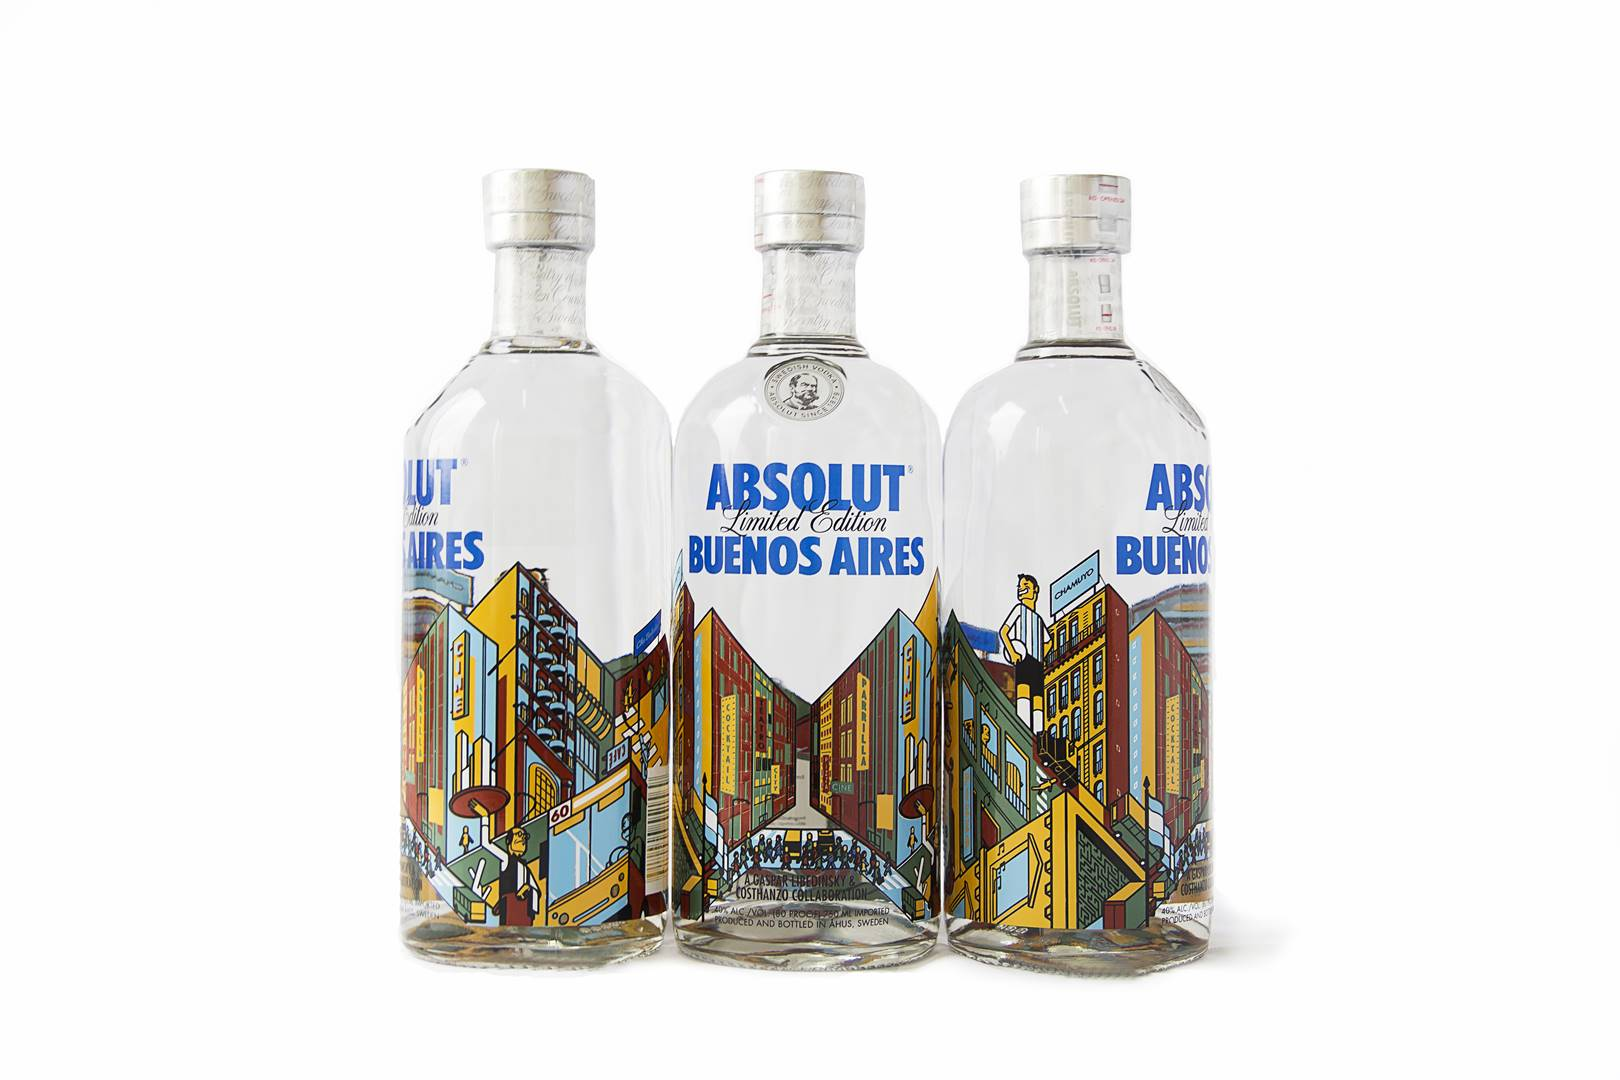 Absolut Buenos Aires by Gaspar Libedinsky - final- ph Flavia Canelo (Copy)